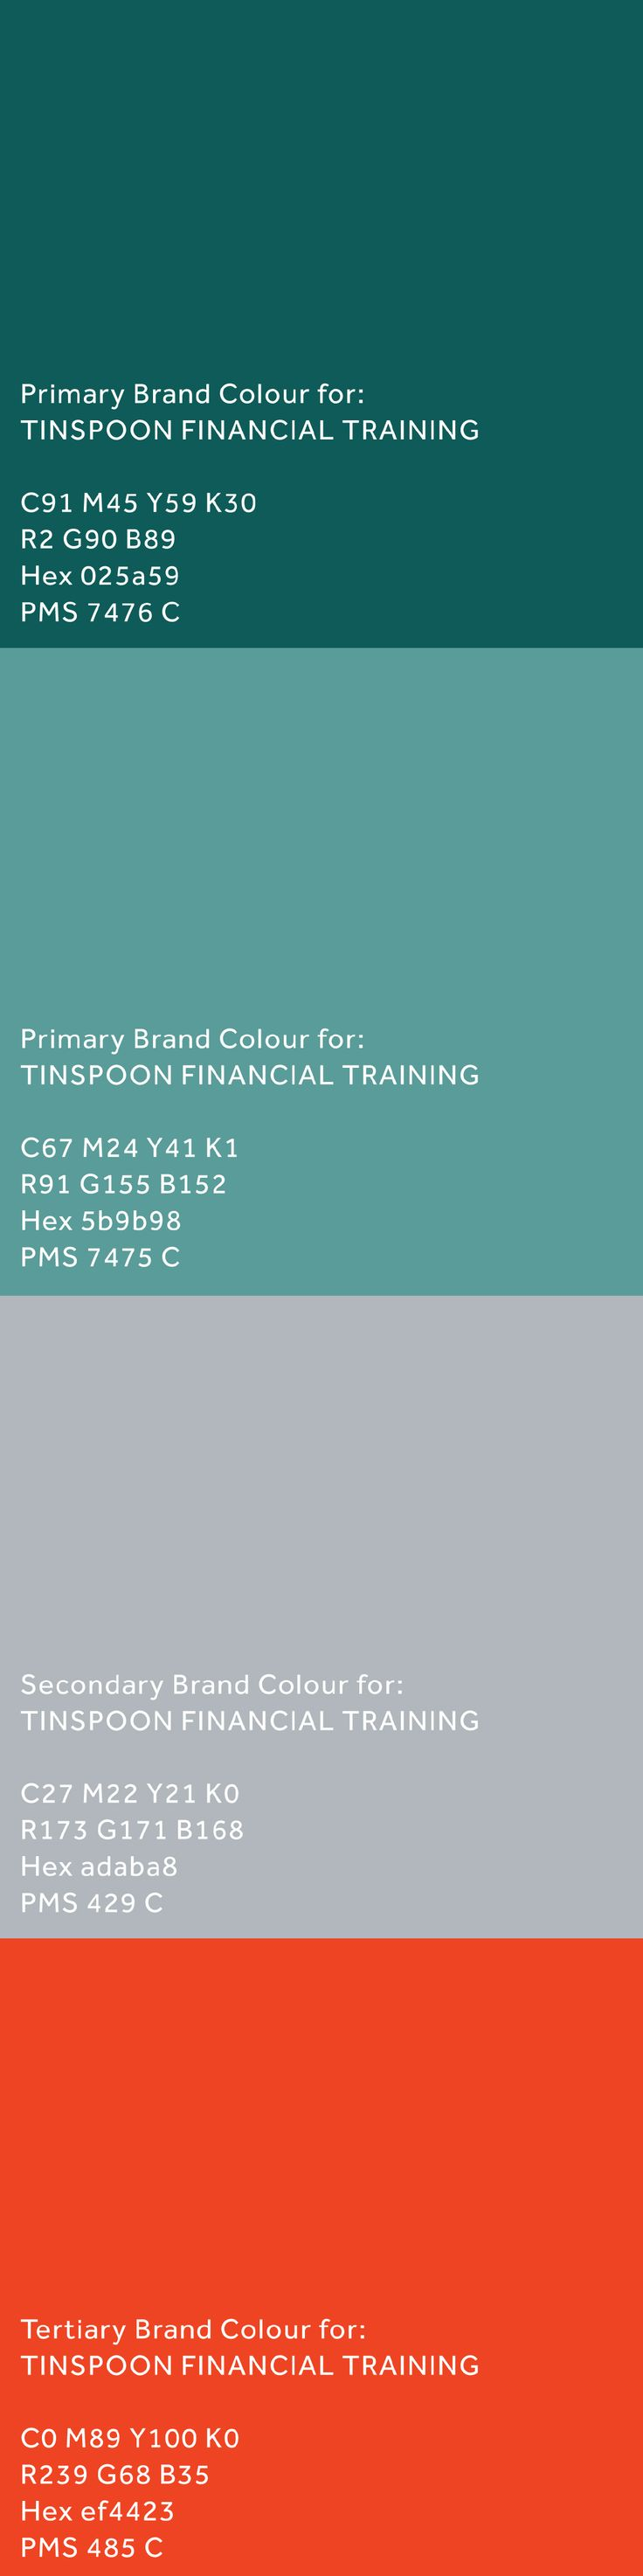 #brand development for @tinspoonfinancialtraining by Inkling About Design 2013 www.inklingaboutdesign.com #logo #branding #identity #graphicdesign